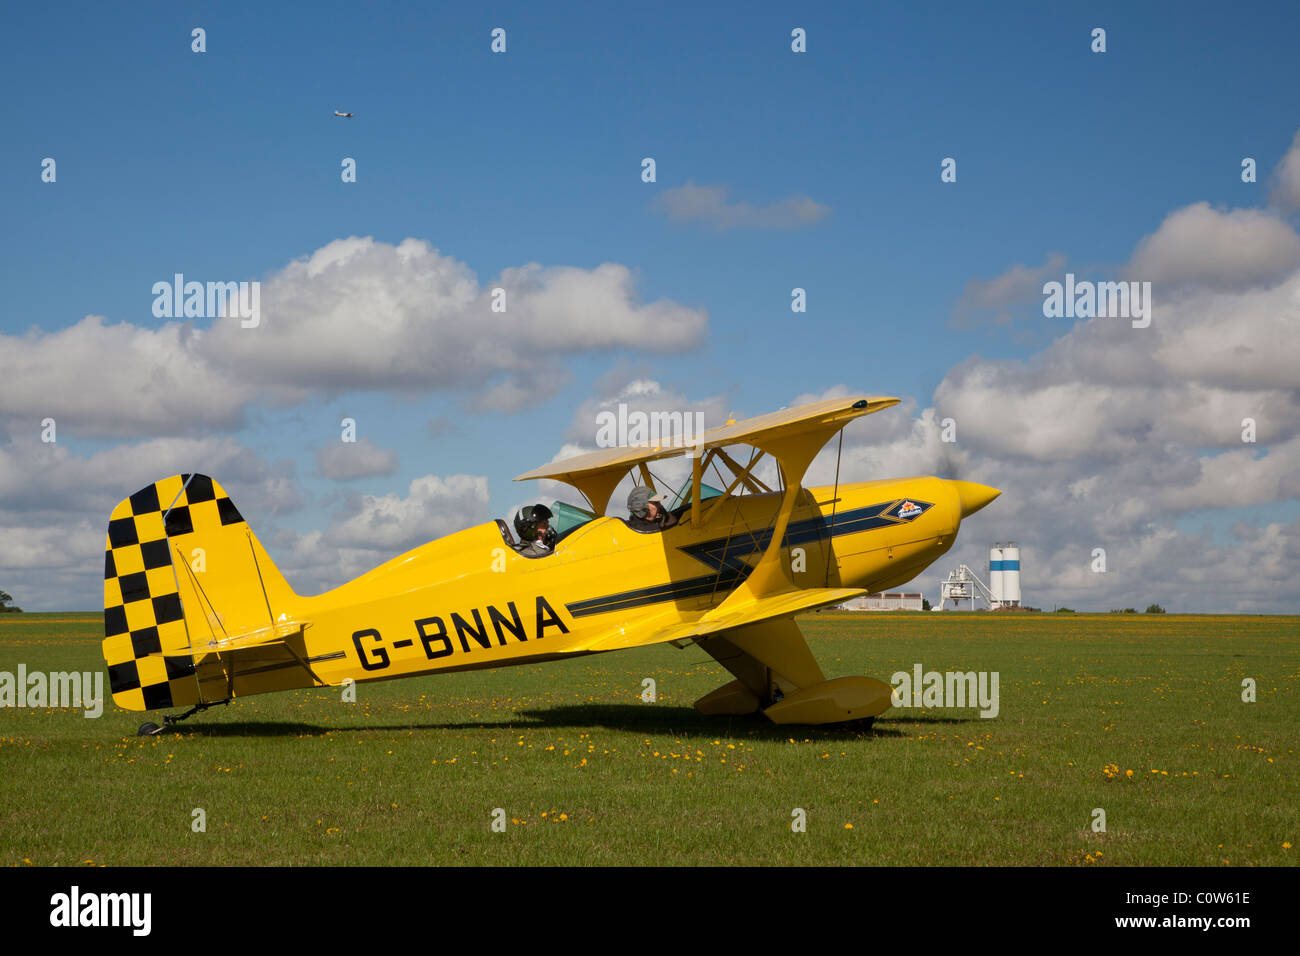 Maxwell Starduster, reg. G- BNNA, at Sywell - Stock Image